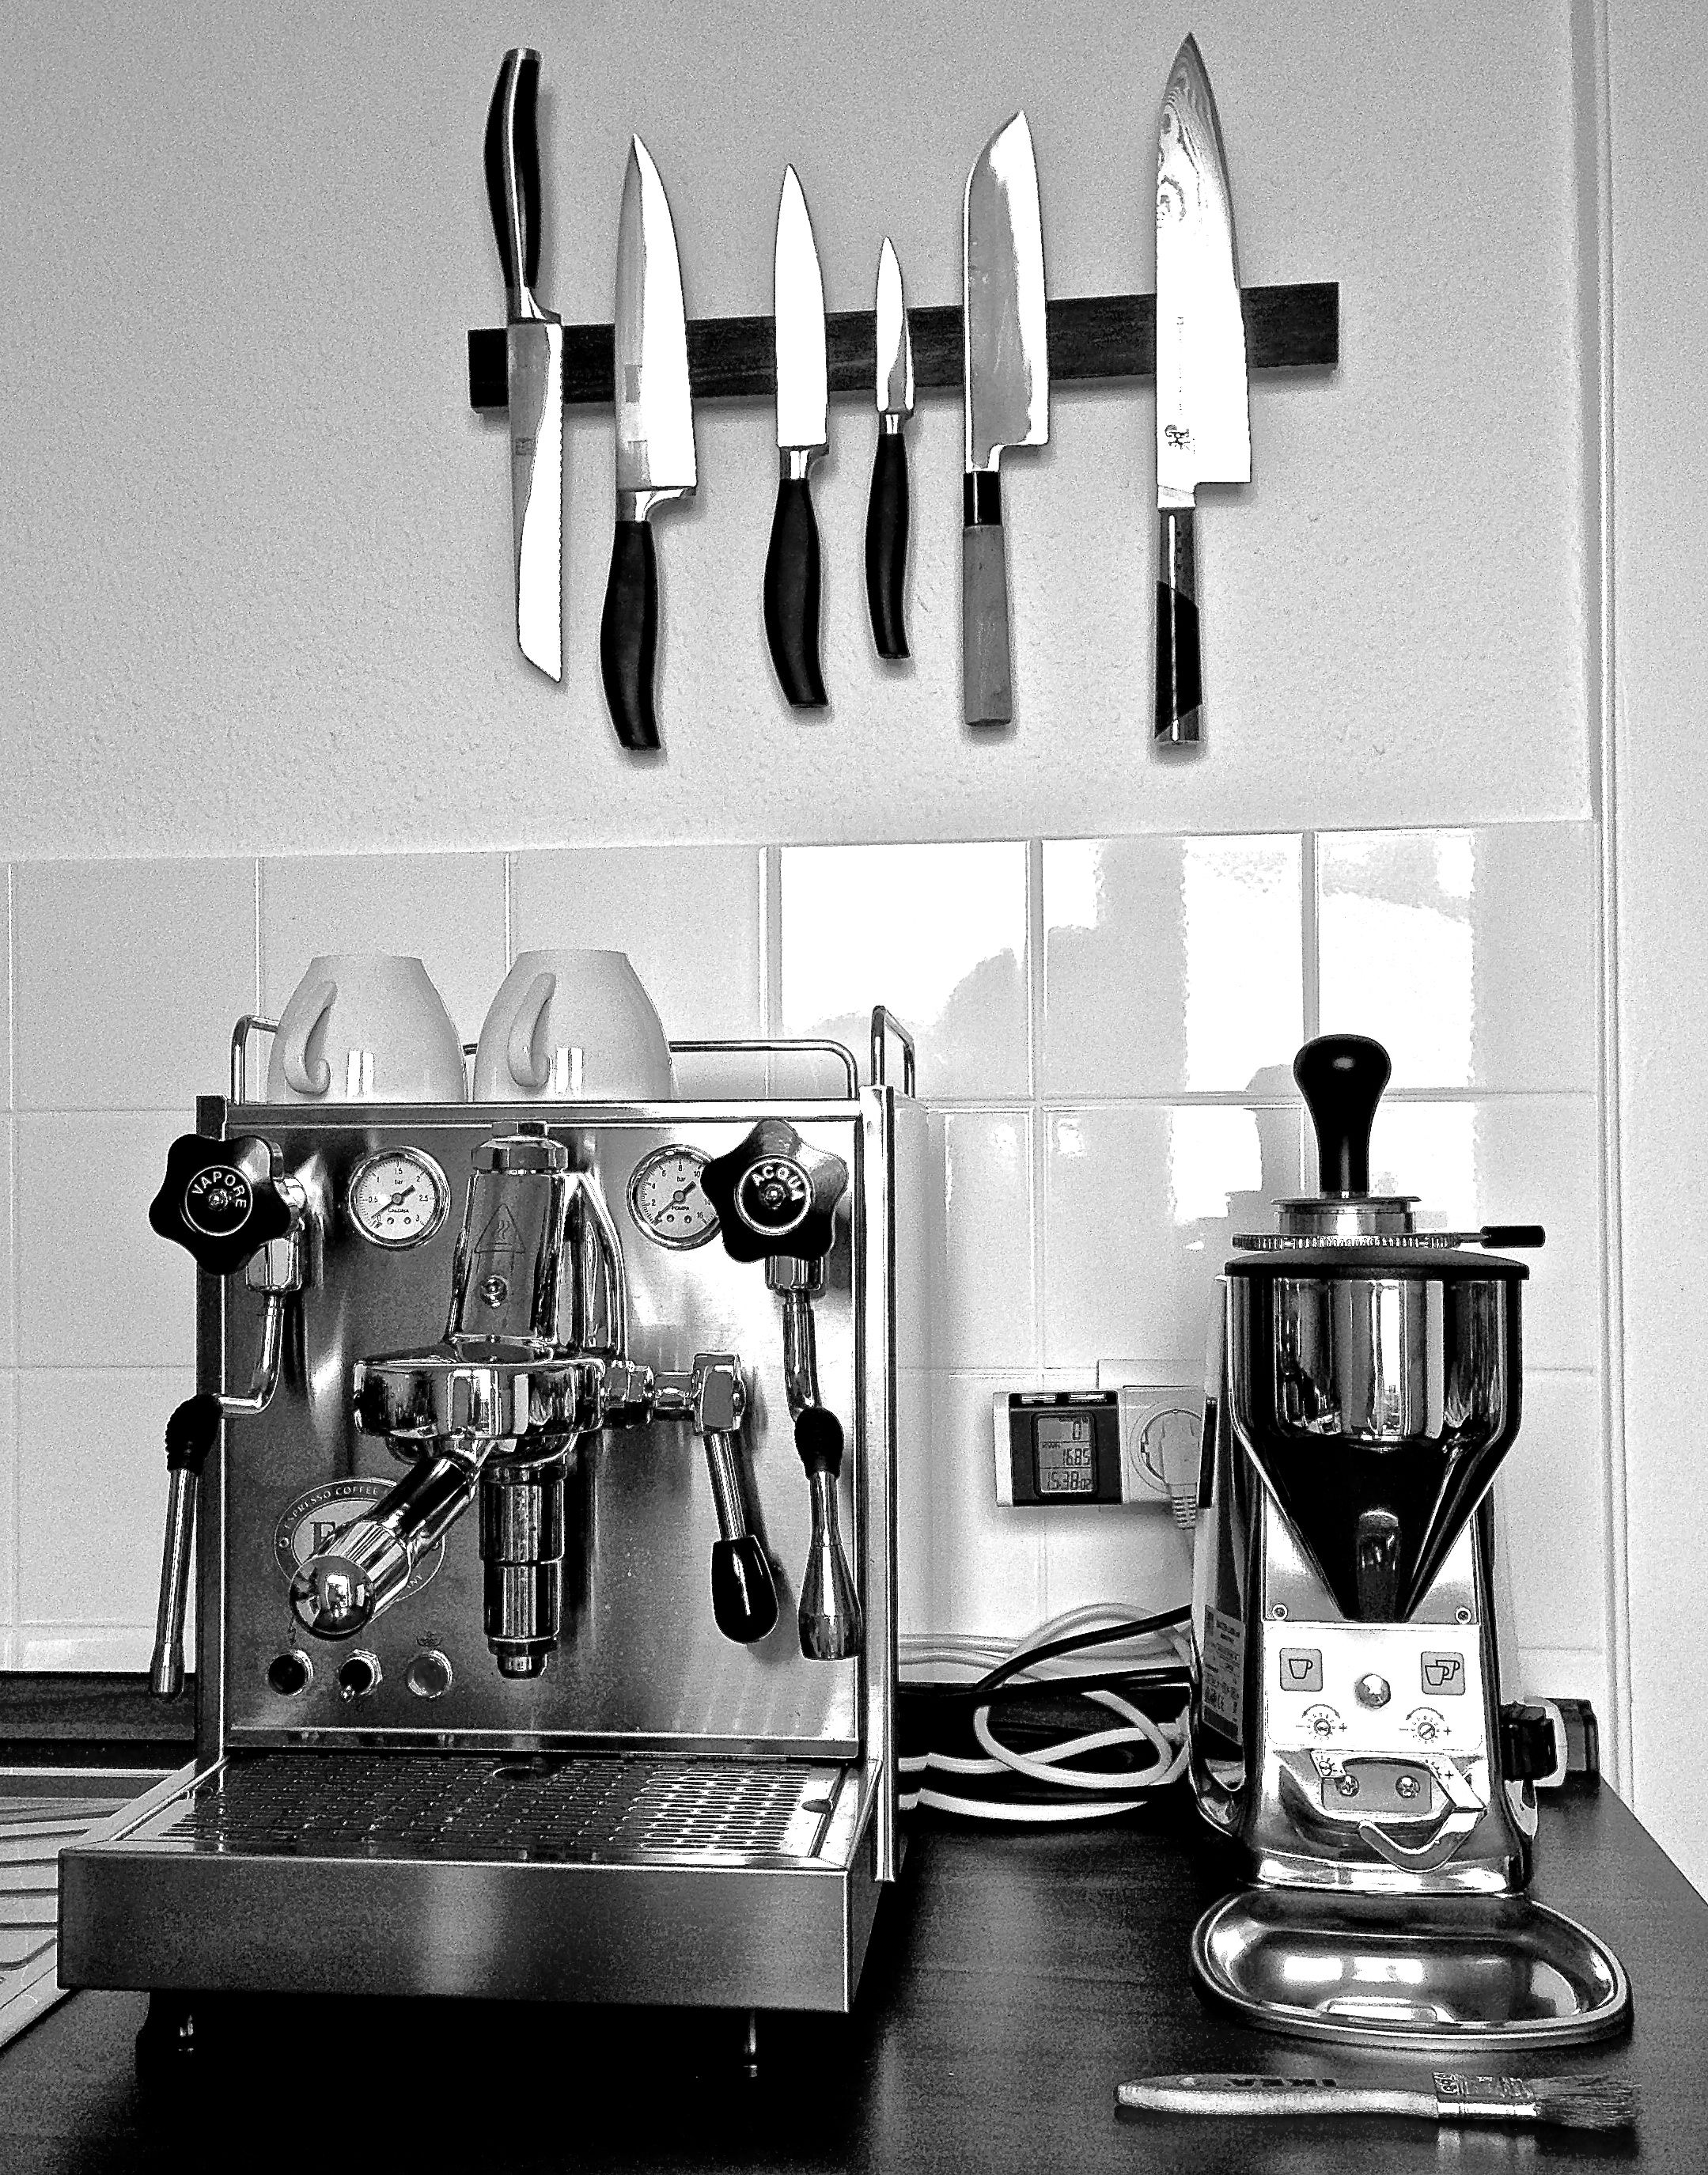 Kitchen Snap Wake Up And Smell The Espresso Ecm